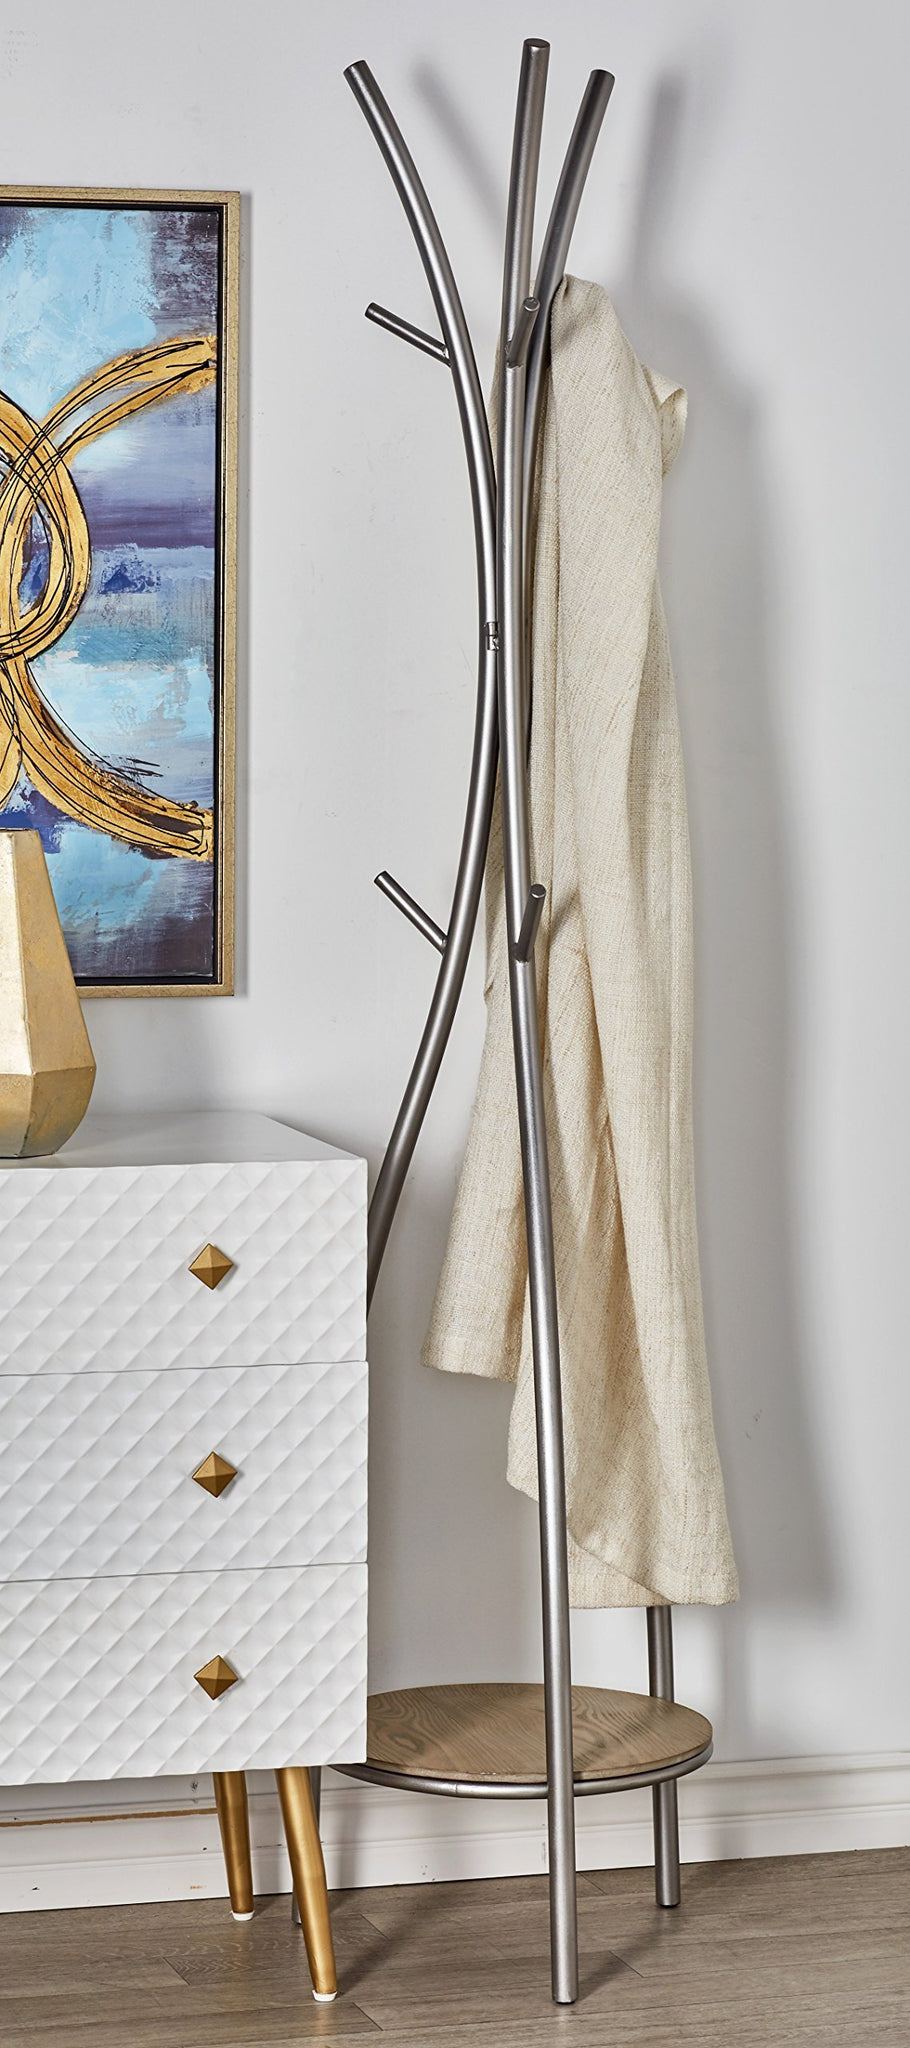 Try deco 79 77602 coat rack silver